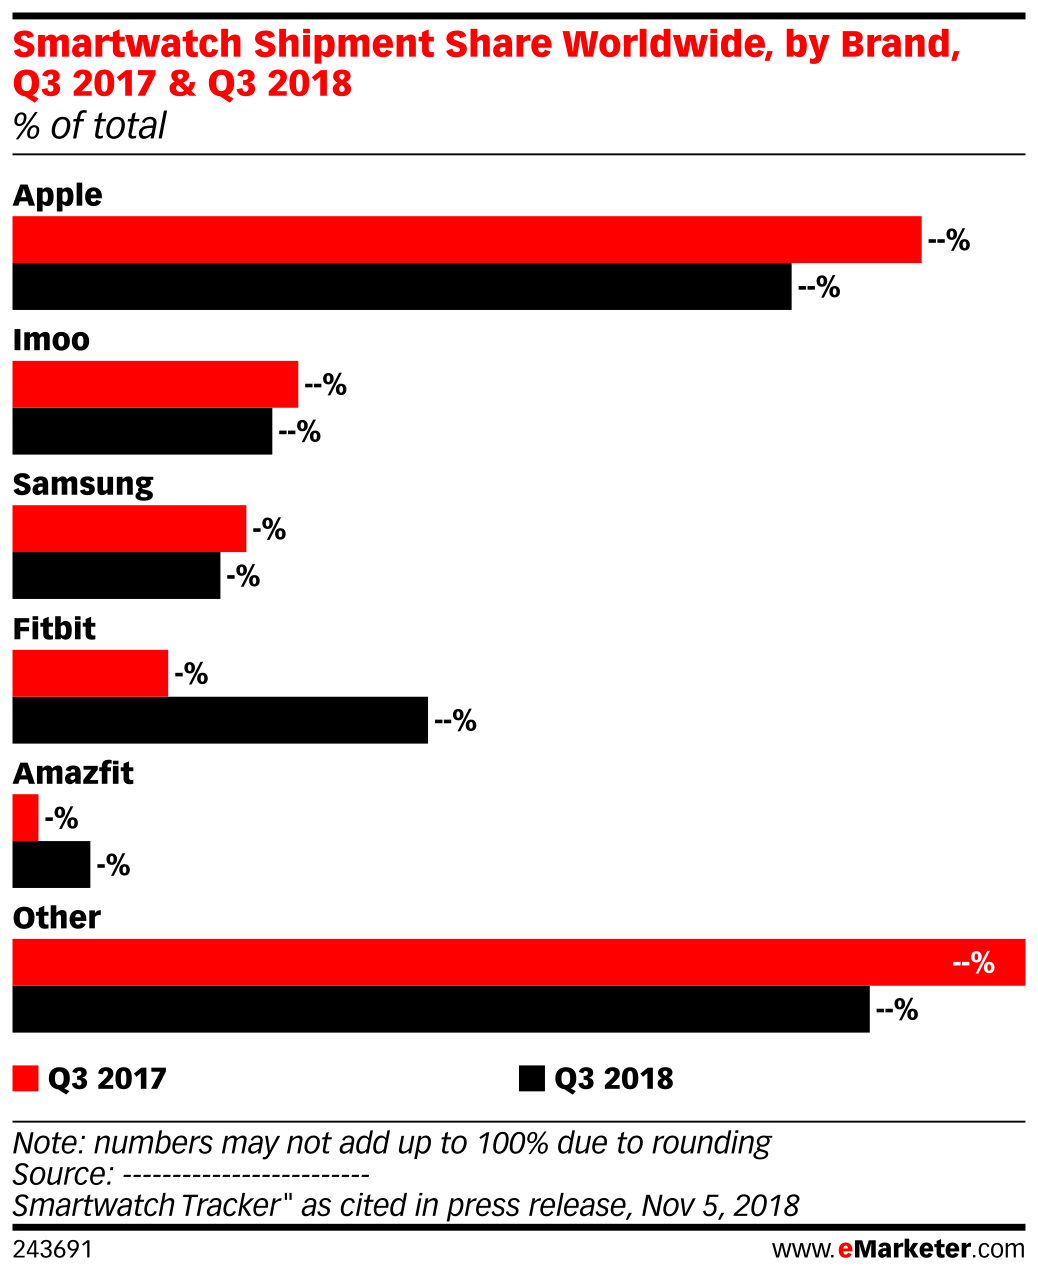 Smartwatch Shipment Share Worldwide, by Brand, Q3 2017 & Q3 2018 (% of total)